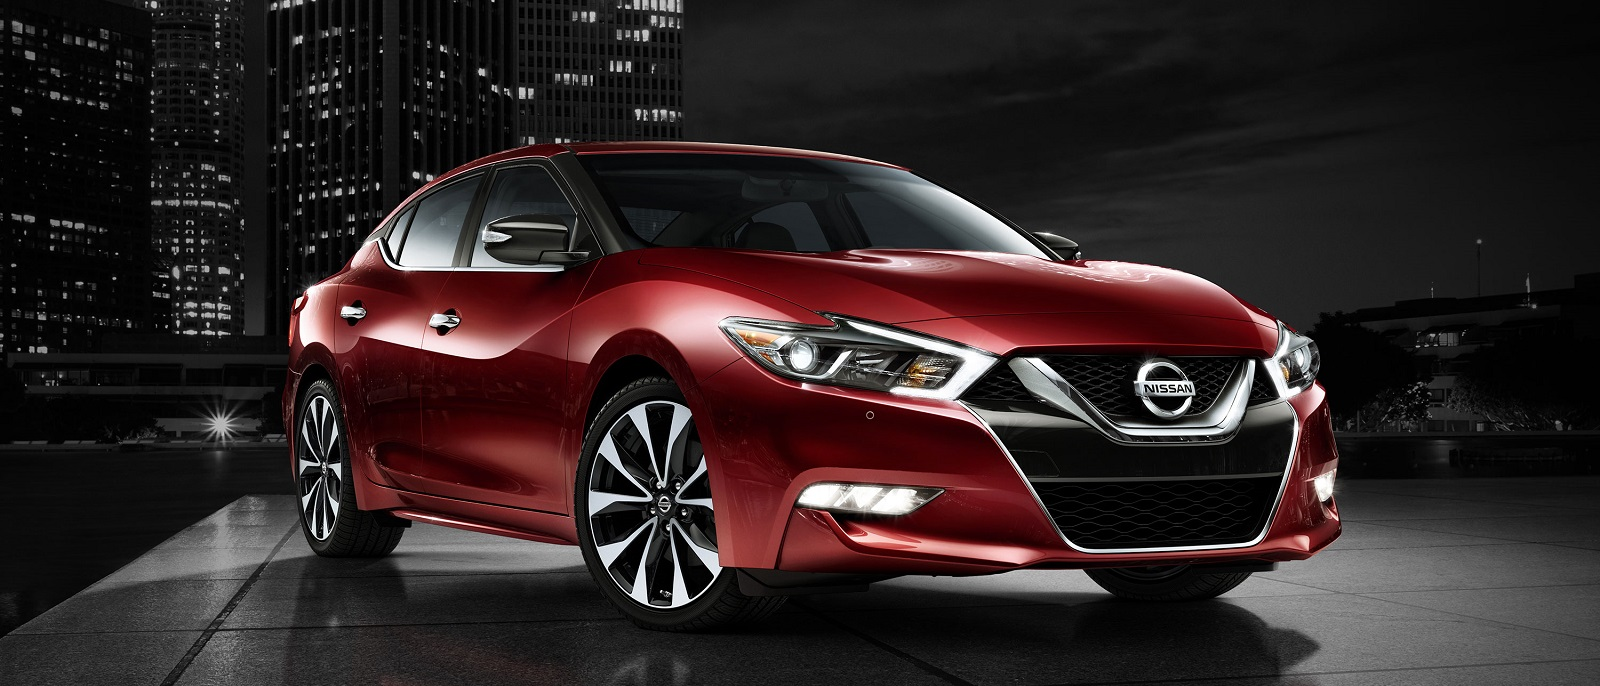 2016-nissan-maxima-coulis-red-side-view-night-skyline